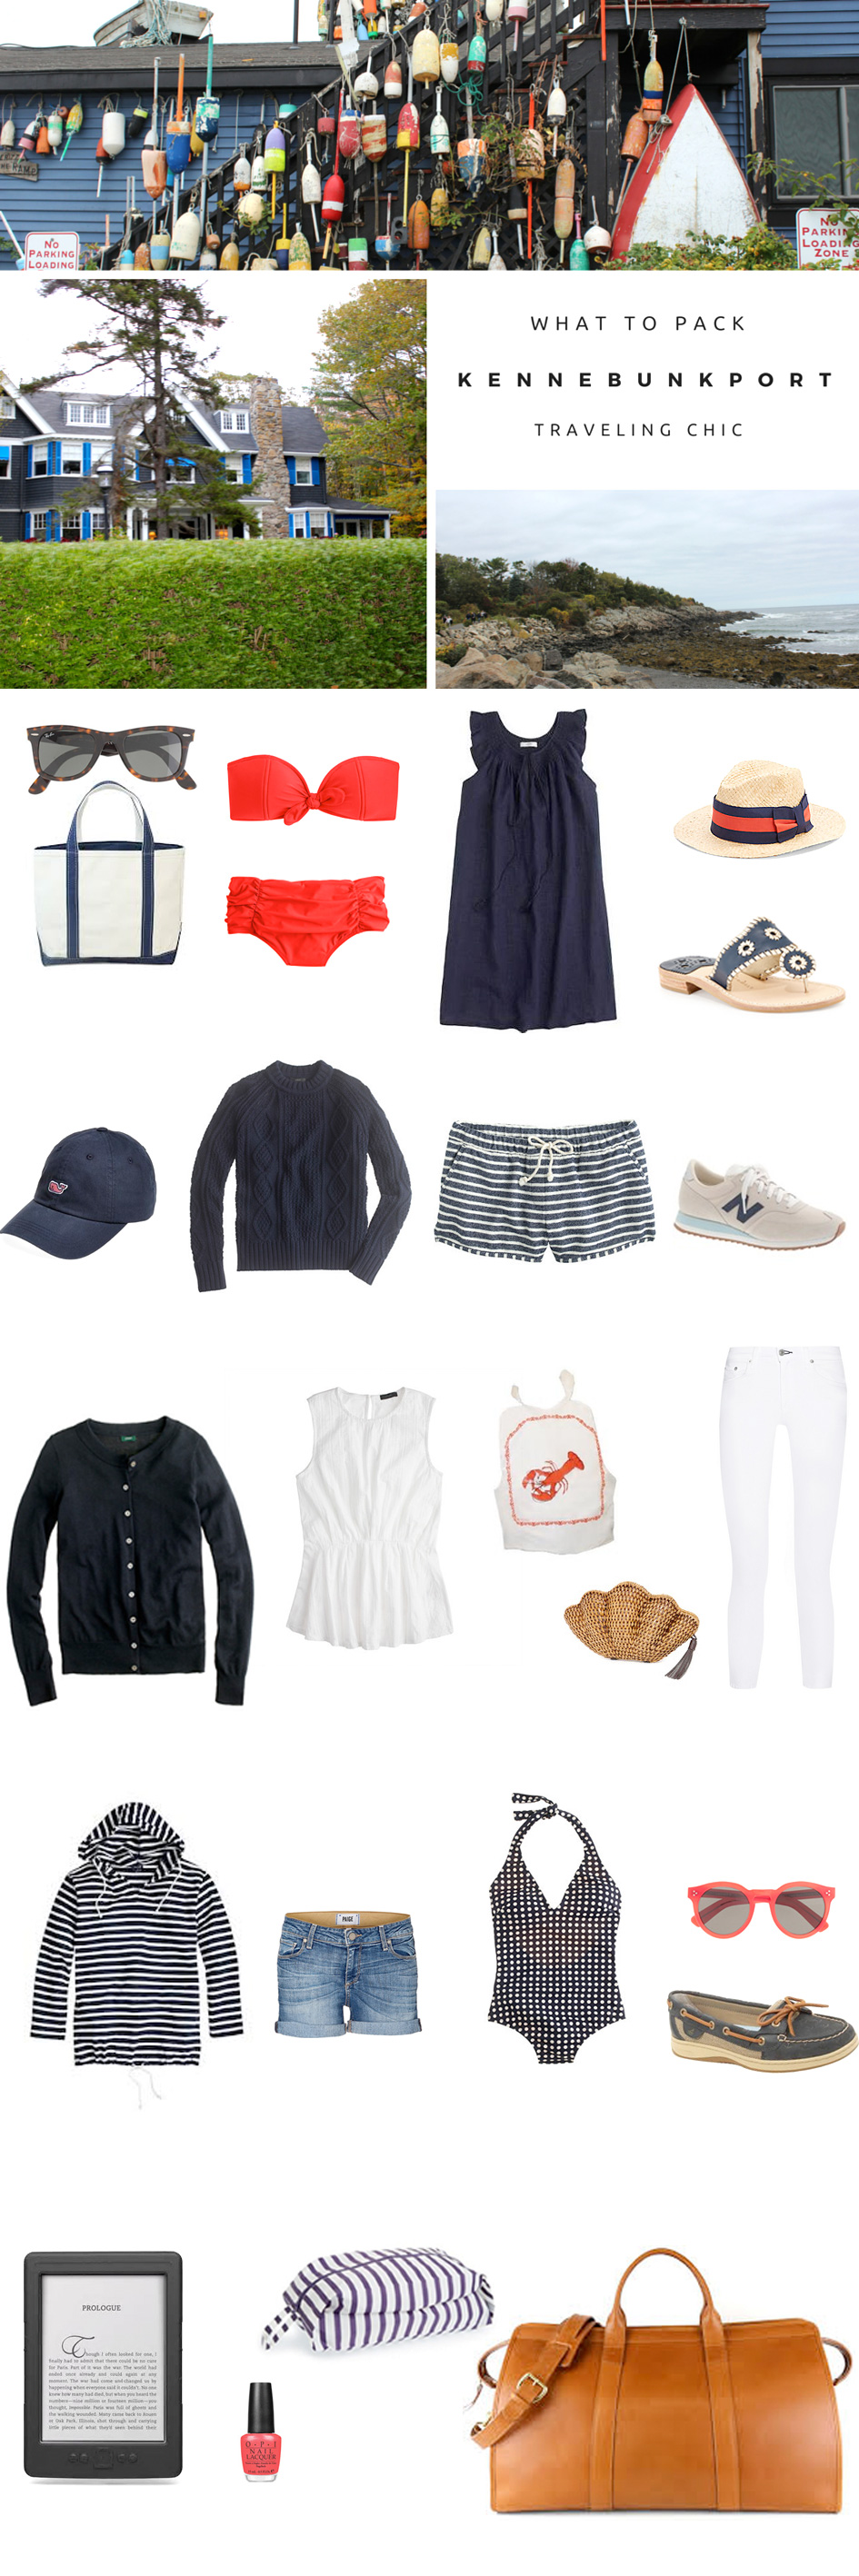 What to Pack for Kennebunkport, Maine